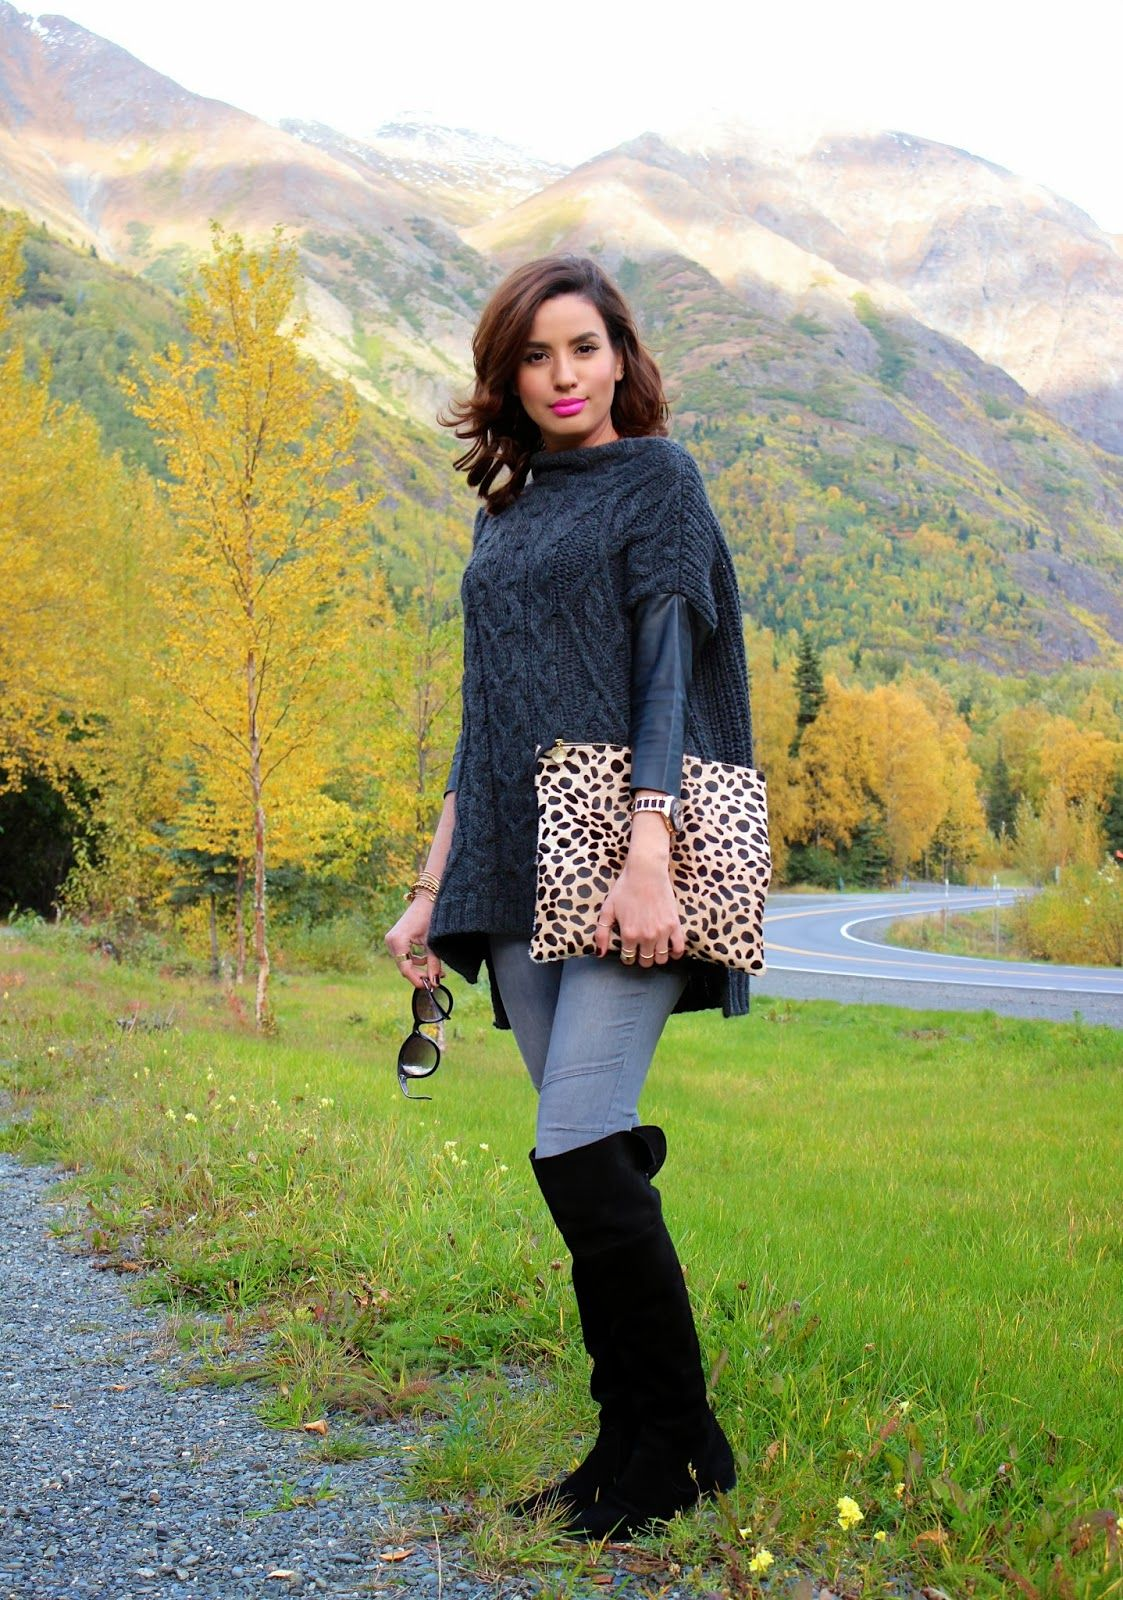 Zara leather sleeve sweater, H&M moto skinny jeans, Zara suede over the knee boots and Clare Vivier leopard clutch